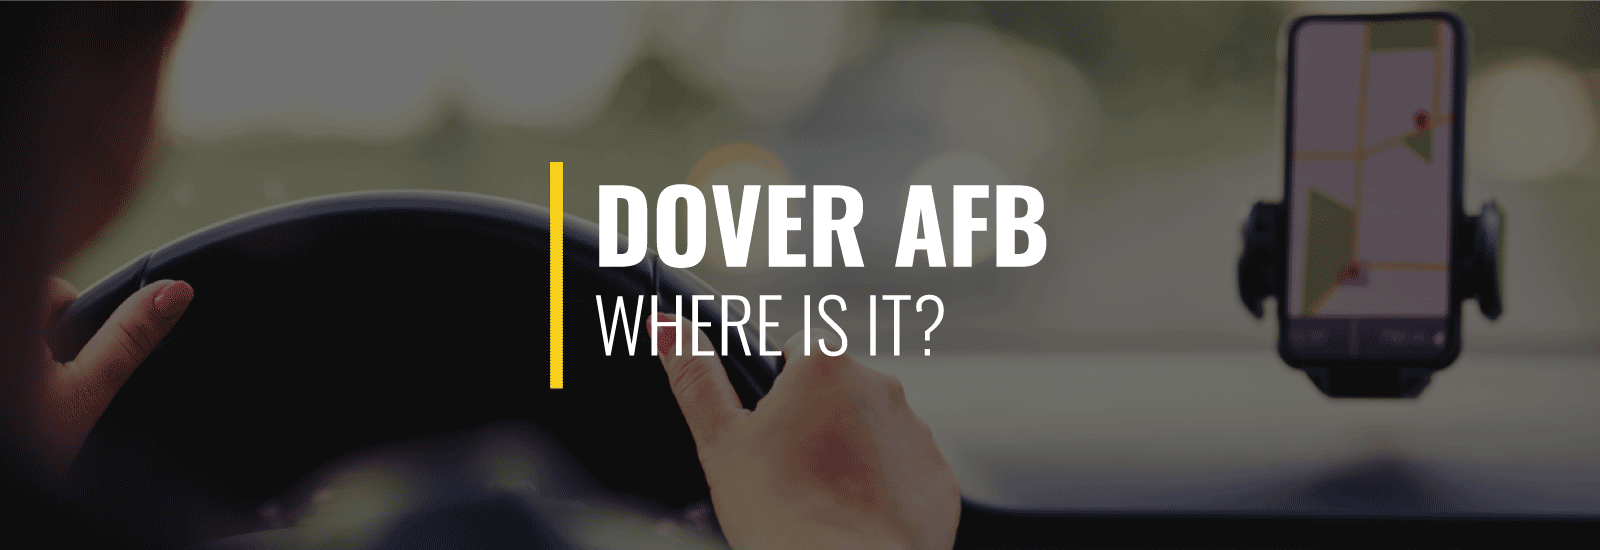 Where Is Dover Air Force Base?